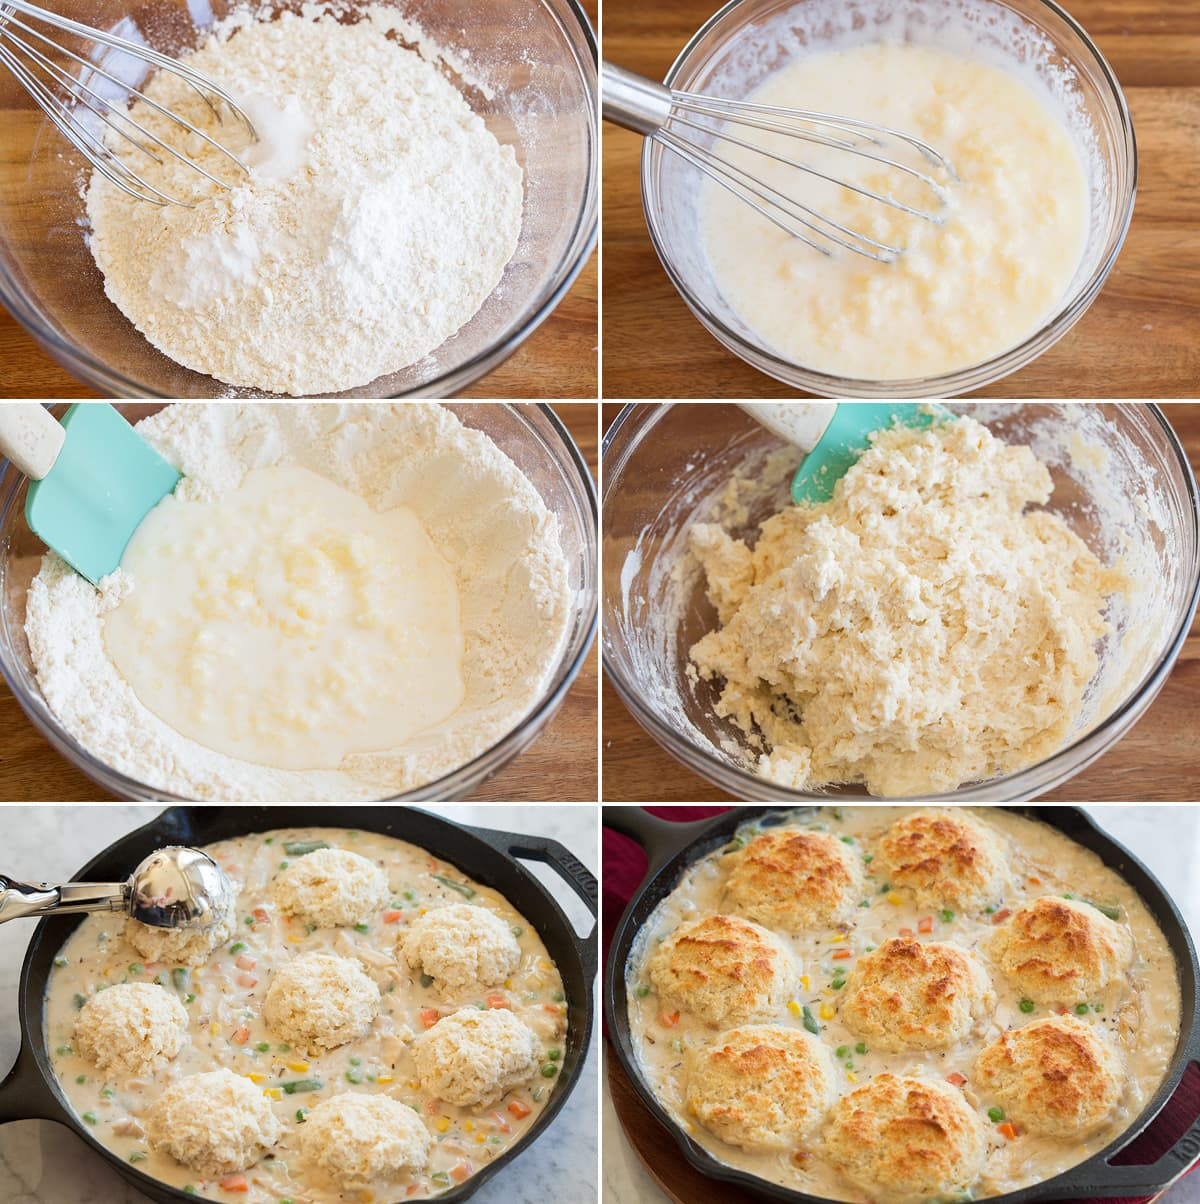 Collage of six images showing how to make biscuits for chicken pot pie.